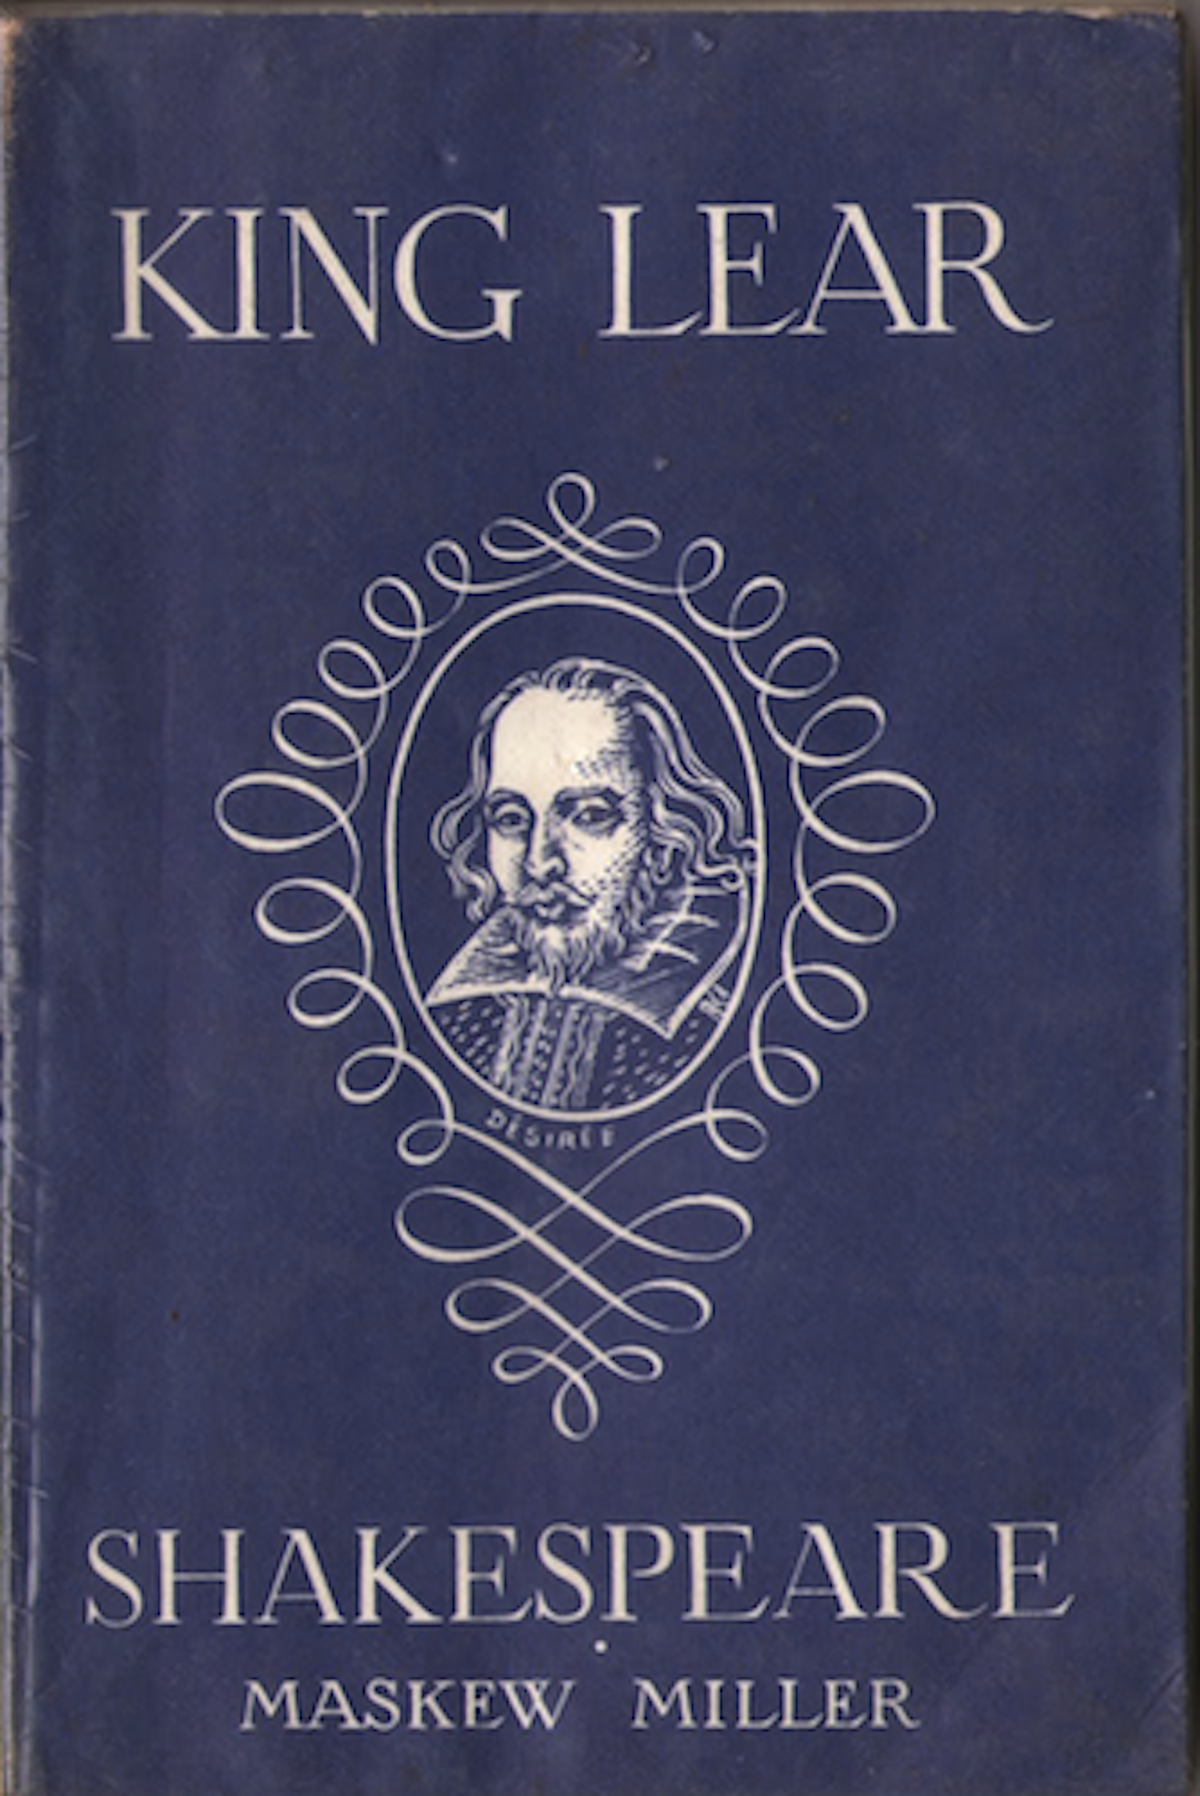 """mercy in king lear Moments earlier, lear told kent that he will go but will take the disguised edgar with him, claiming edgar to be his """"philosopher"""" calling edgar a """"good athenian"""" serves to also call him a greek philosopher, because the people of athens were associated with the field of philosophy and the pursuit of knowledge."""